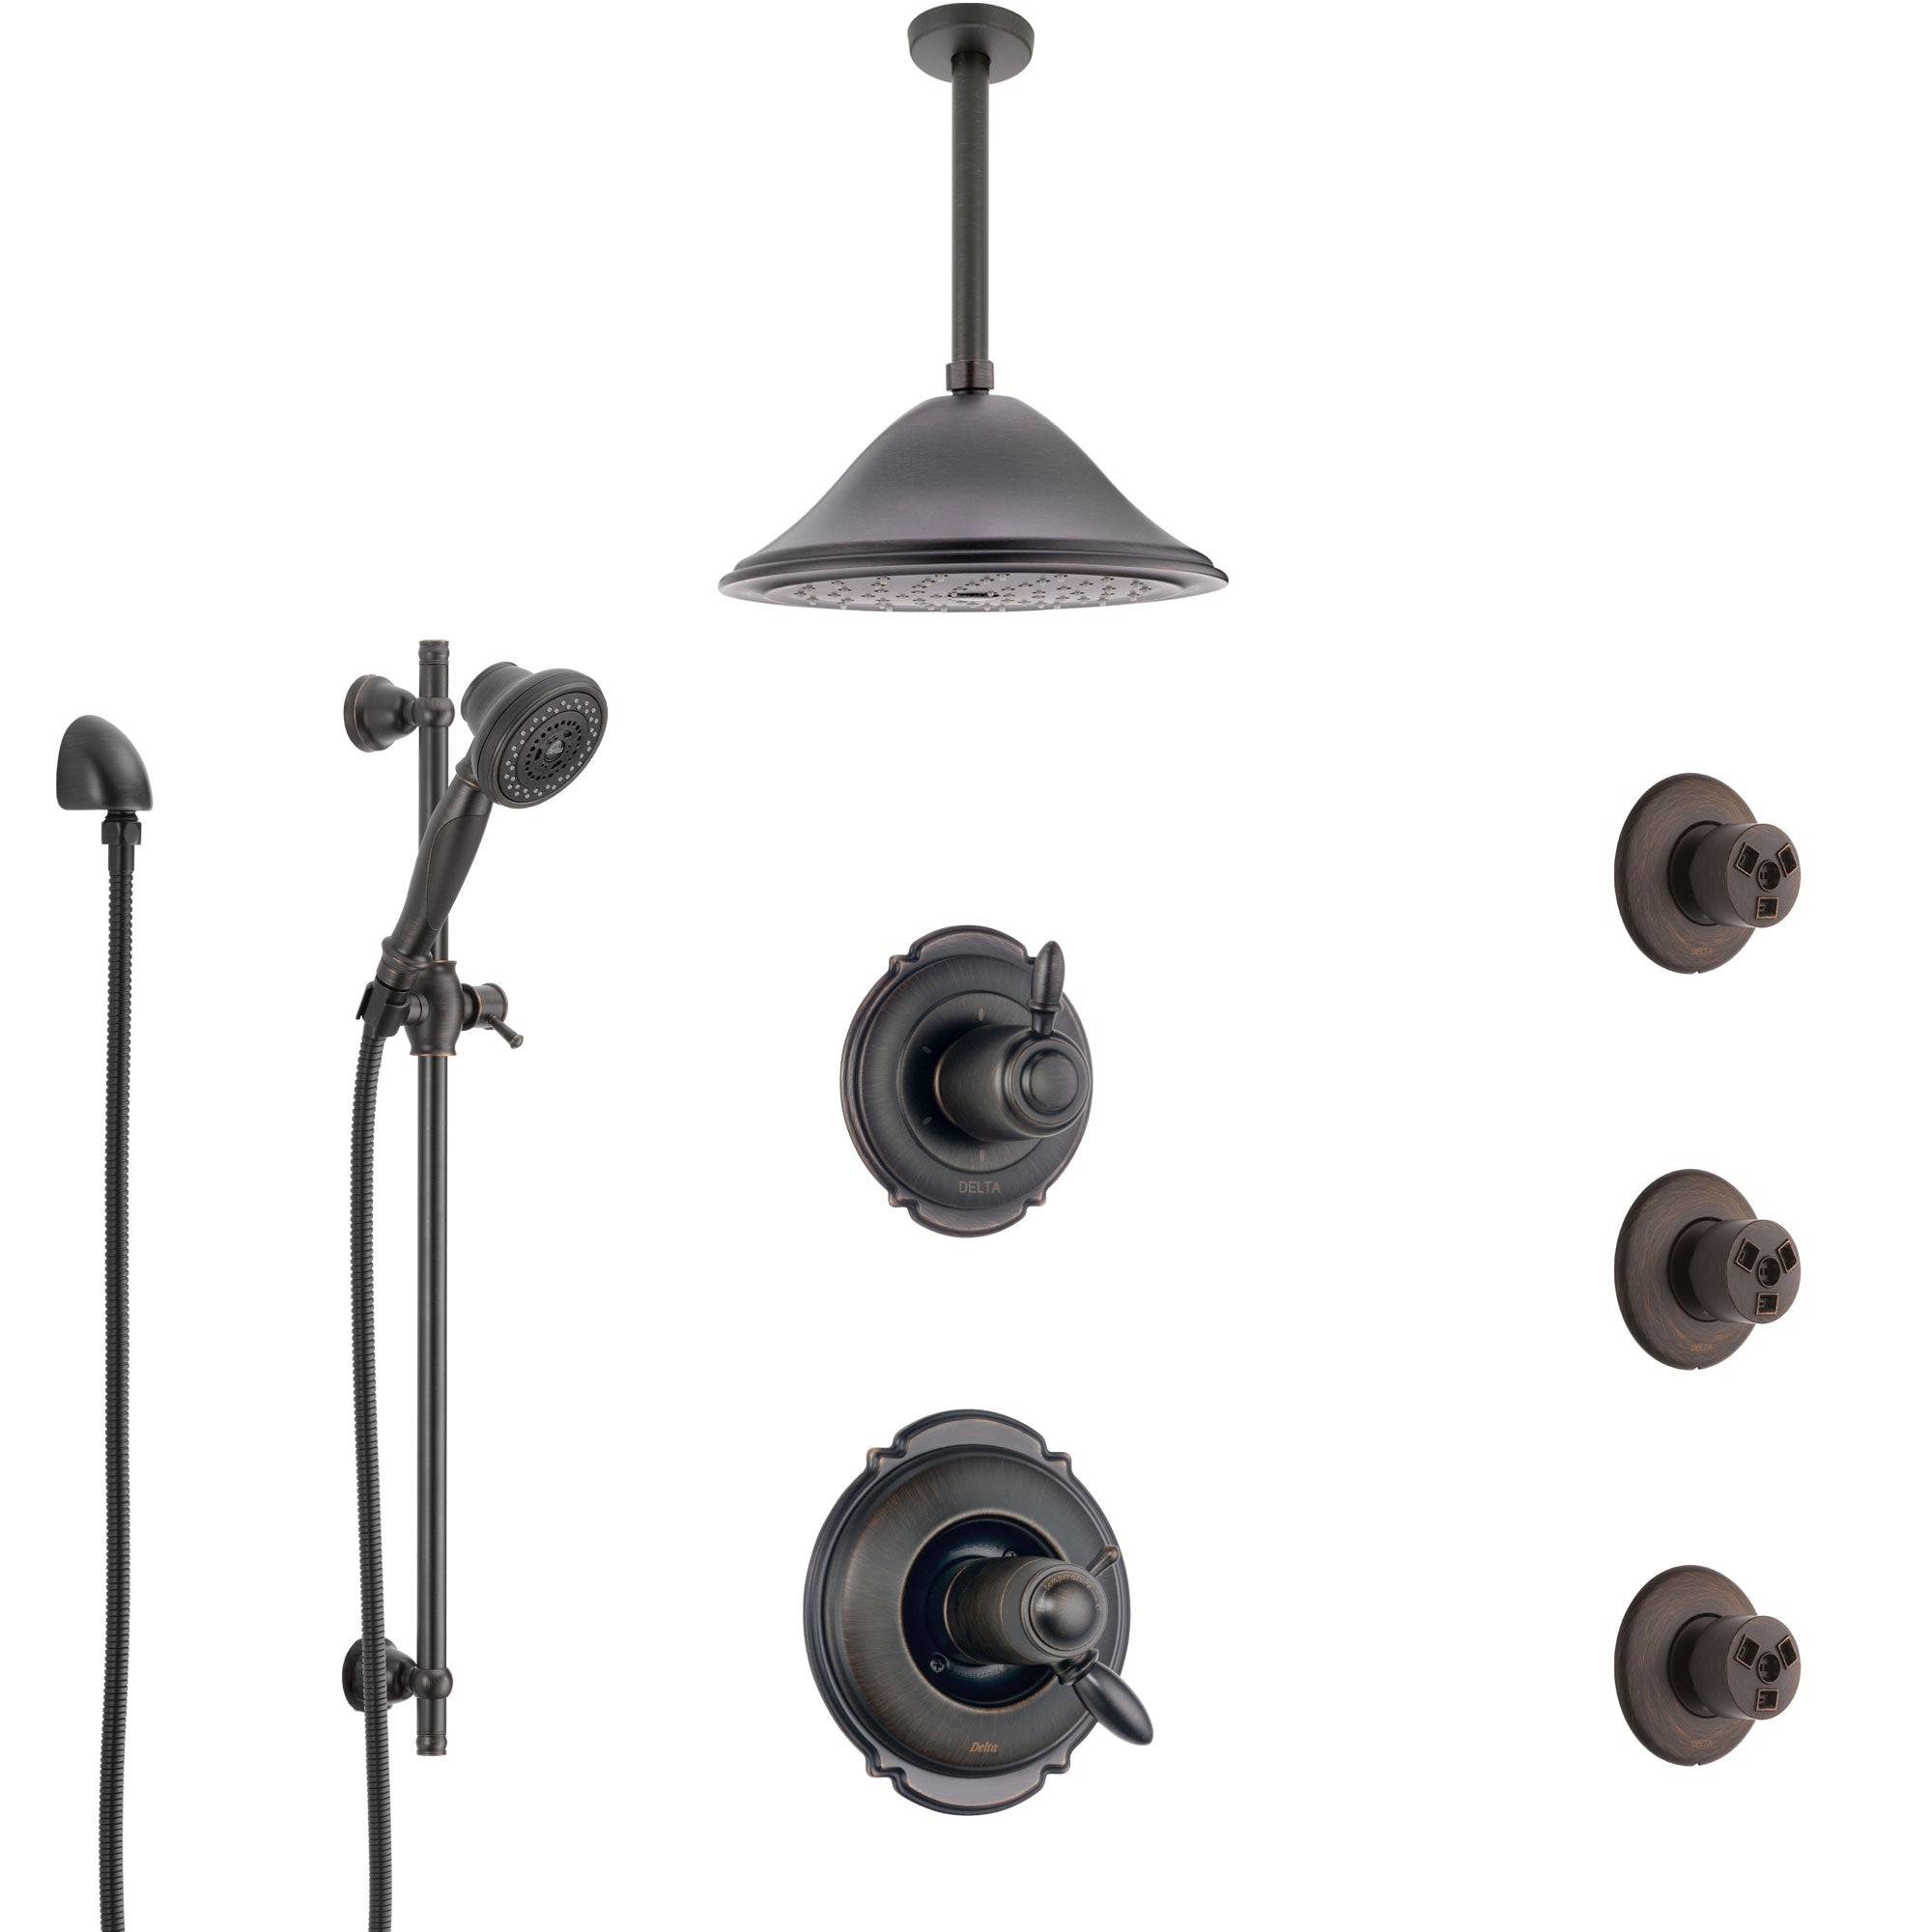 Delta Victorian Venetian Bronze Shower System with Dual Thermostatic Control, Diverter, Ceiling Showerhead, 3 Body Sprays, and Hand Shower SS17T552RB7